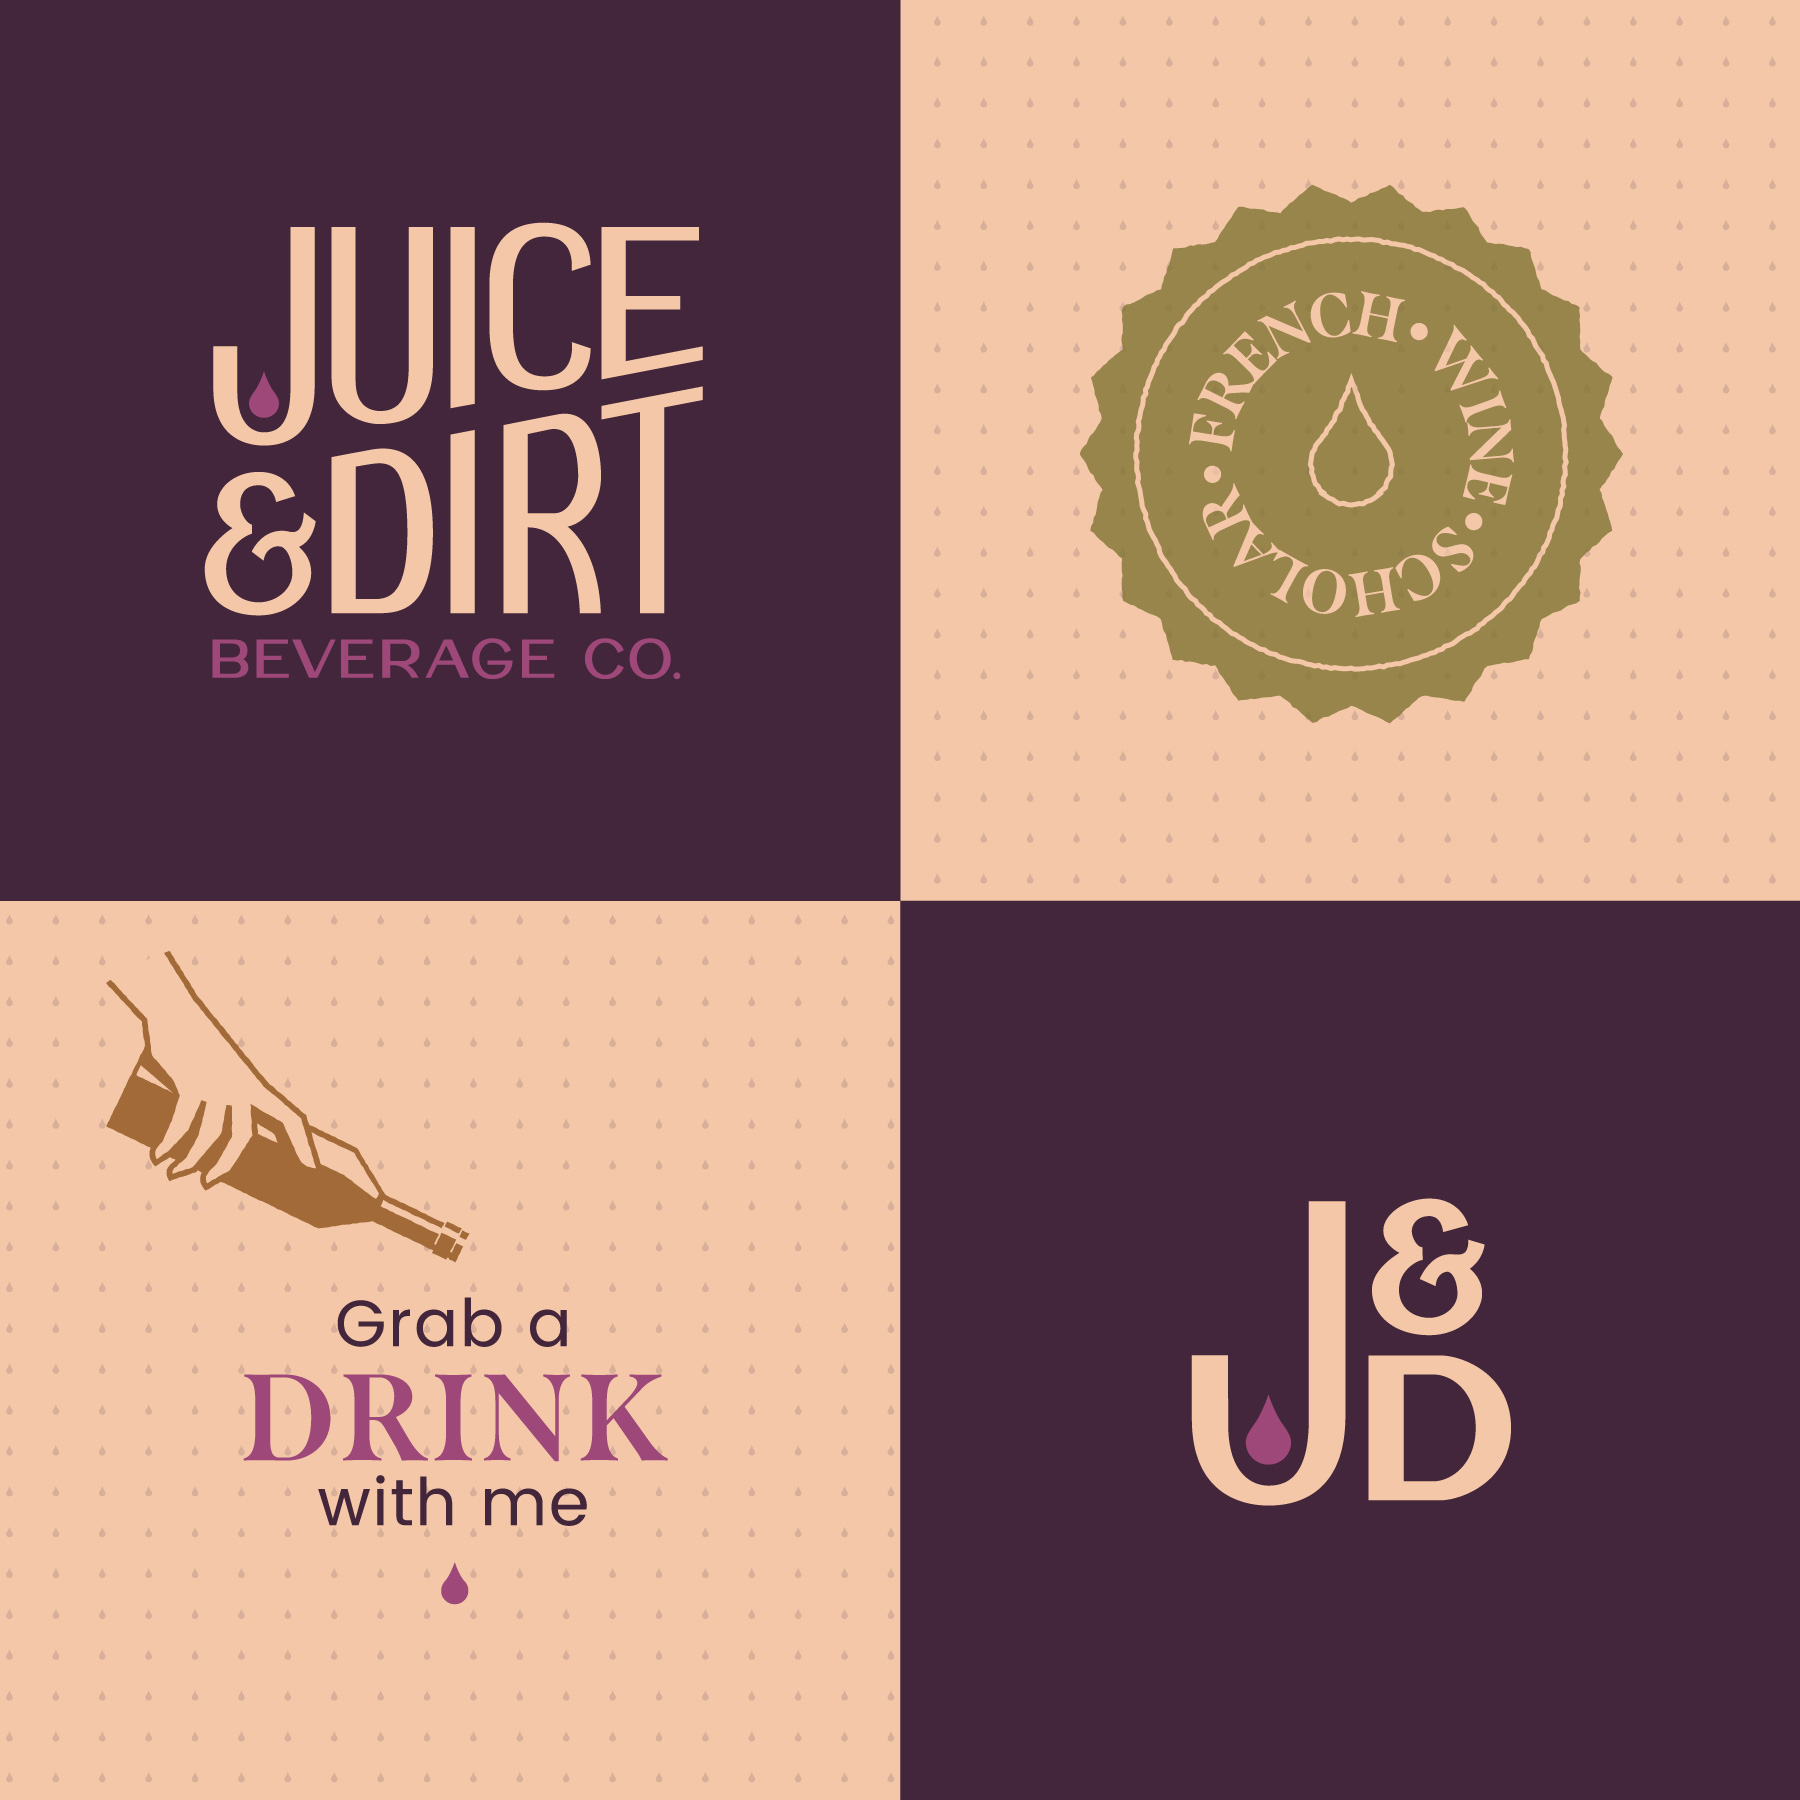 casestudy-graphic-design-branding-juice-and-dirt-beverage-co/